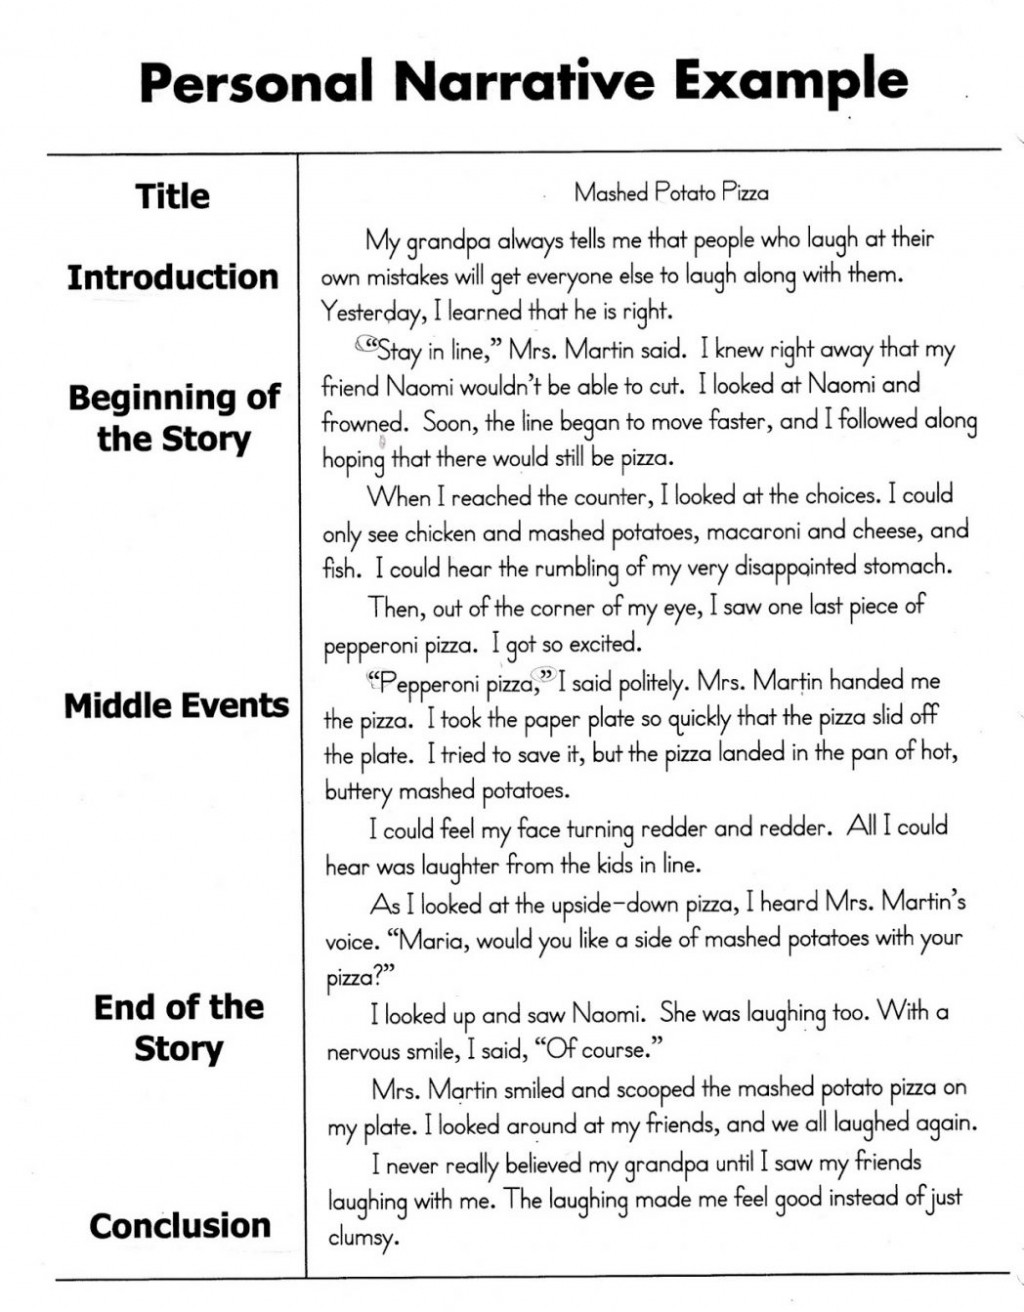 011 Macbeth Essay Topic Sample Narrative High School Topics For College Students Personal Prompts 1048x1343 Fascinating Writing 5th Grade Common Core 4th Large